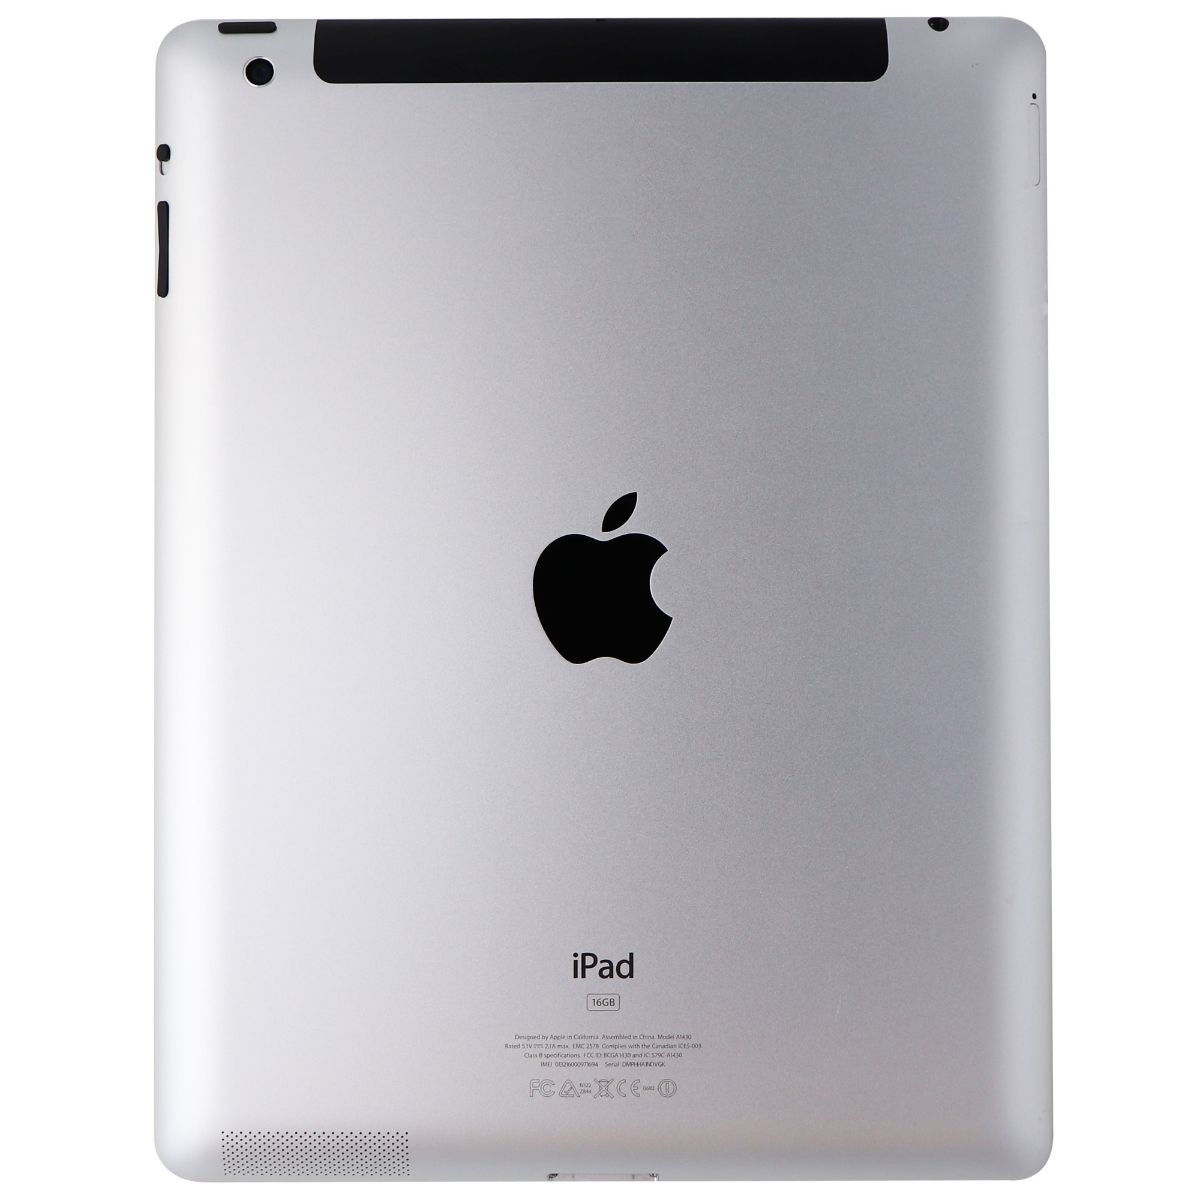 Apple iPad 9.7-inch (3rd Generation) Tablet A1430 (AT&T Locked) - 16GB / White